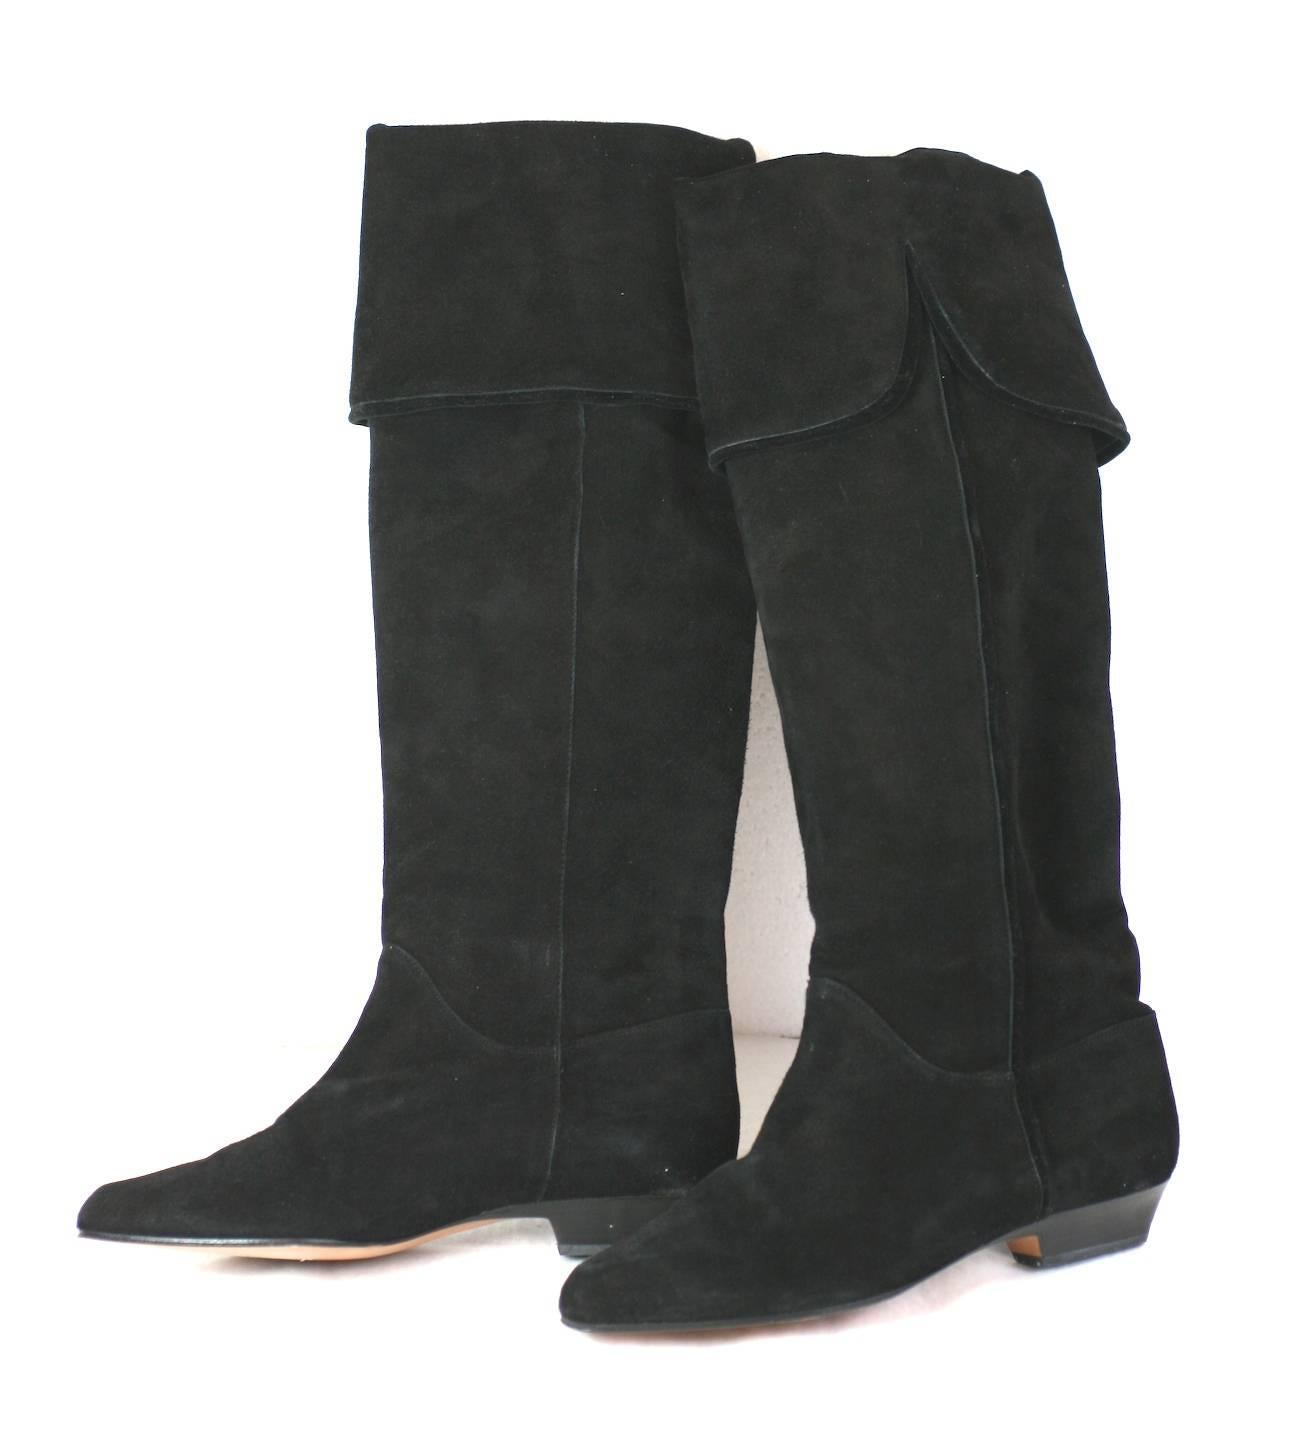 17318aac6cd4 Yves Saint Laurent High Black Suede Boots For Sale at 1stdibs